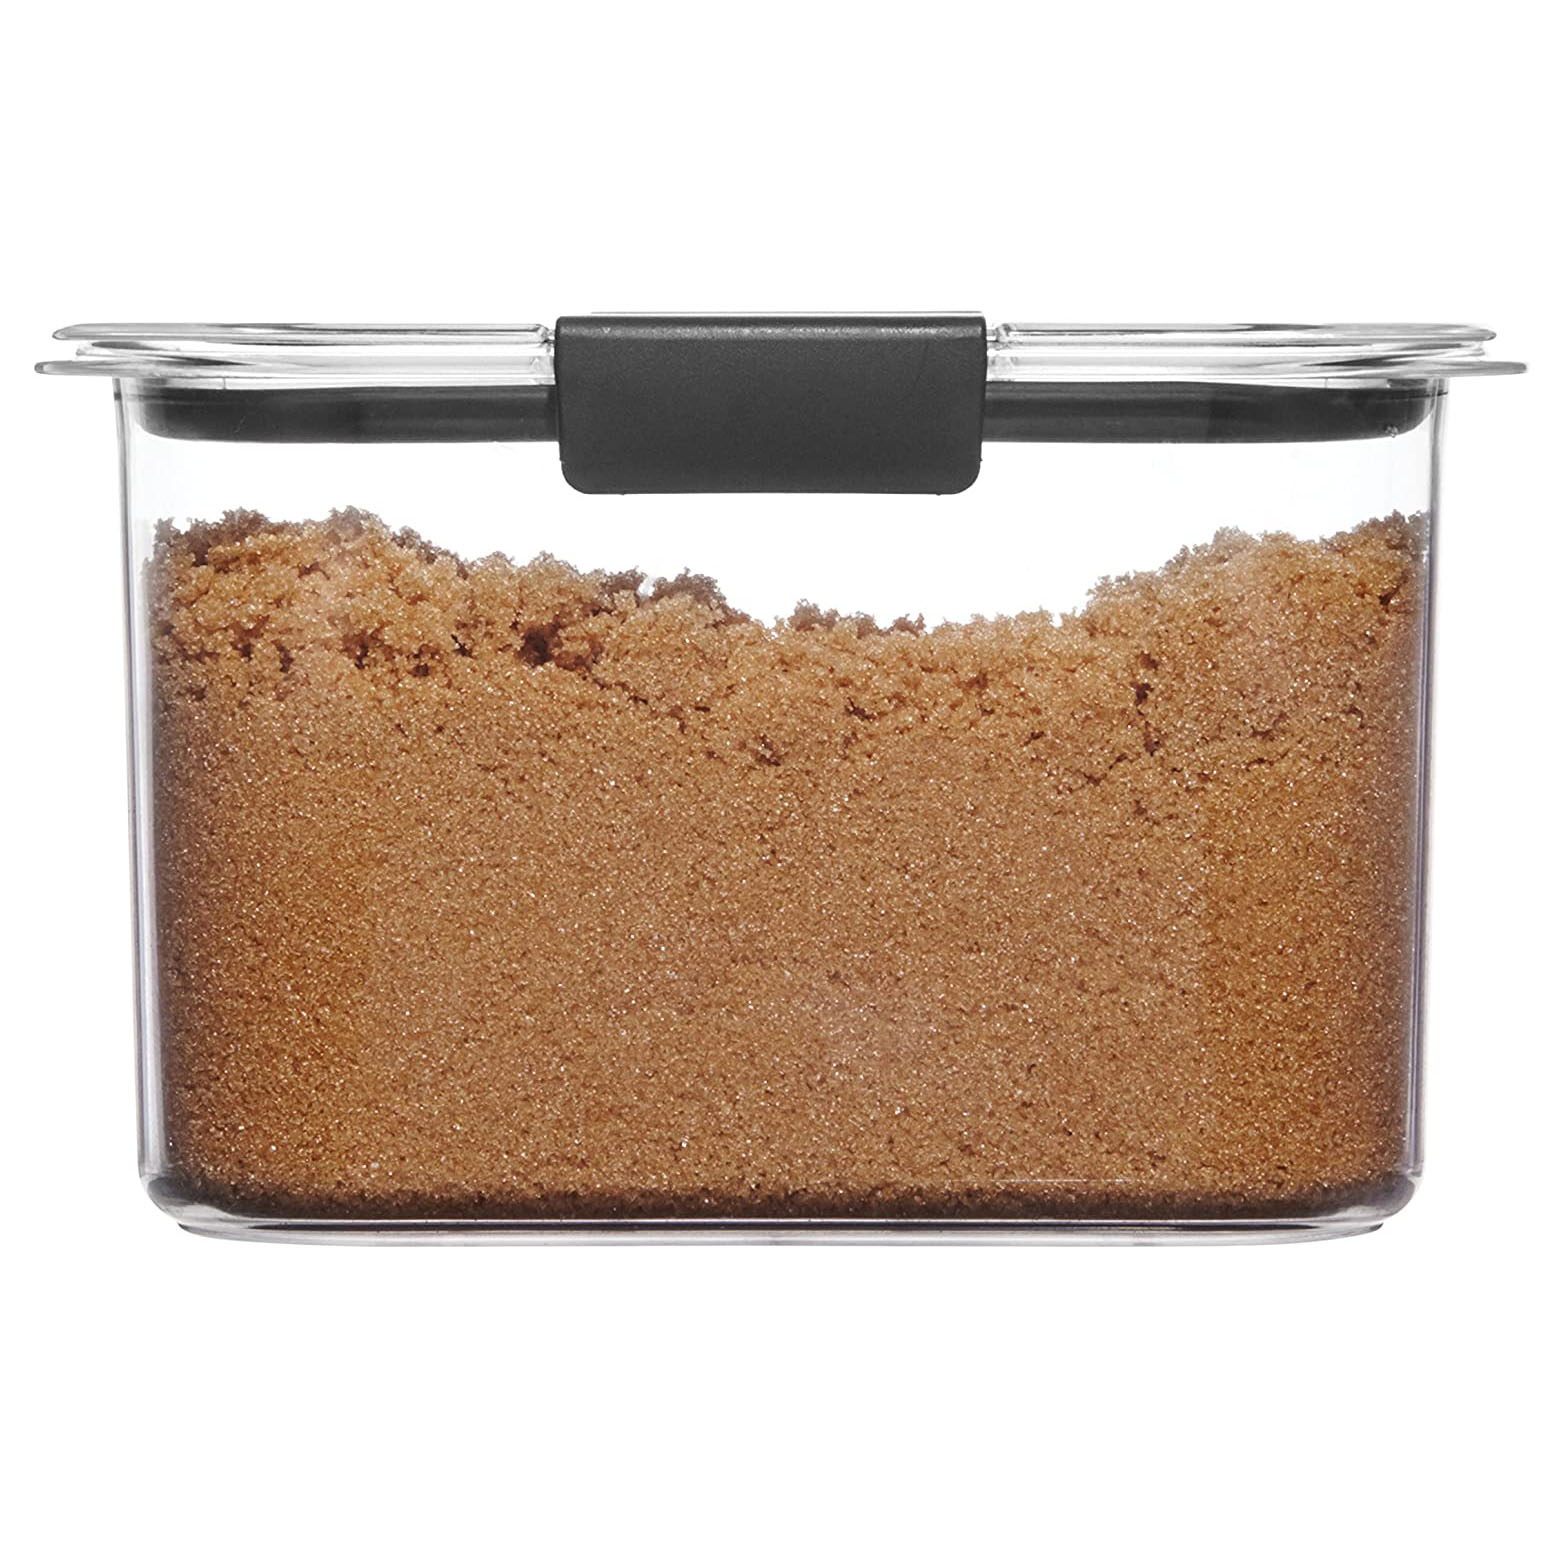 Rubbermaid Container, BPA-Free Plastic, Brilliance Pantry Airtight Food Storage, Open Stock, Brown Sugar